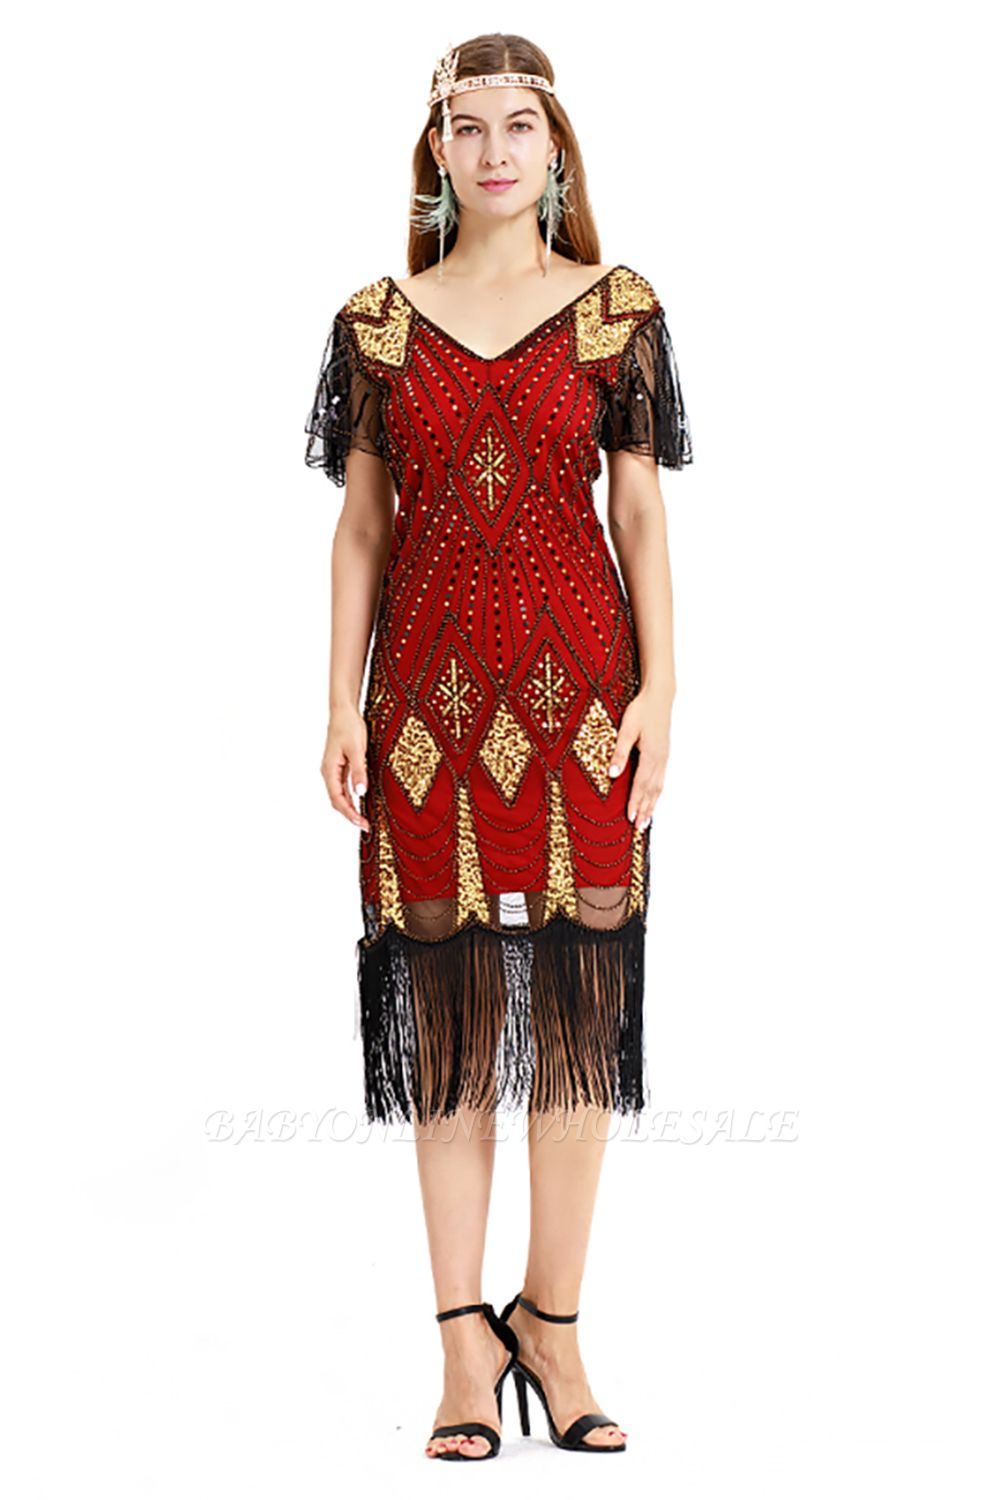 Casual Short Sleeves Short Black Burgundy Cocktail Dresses | Shining Sequined Dress with Tassels